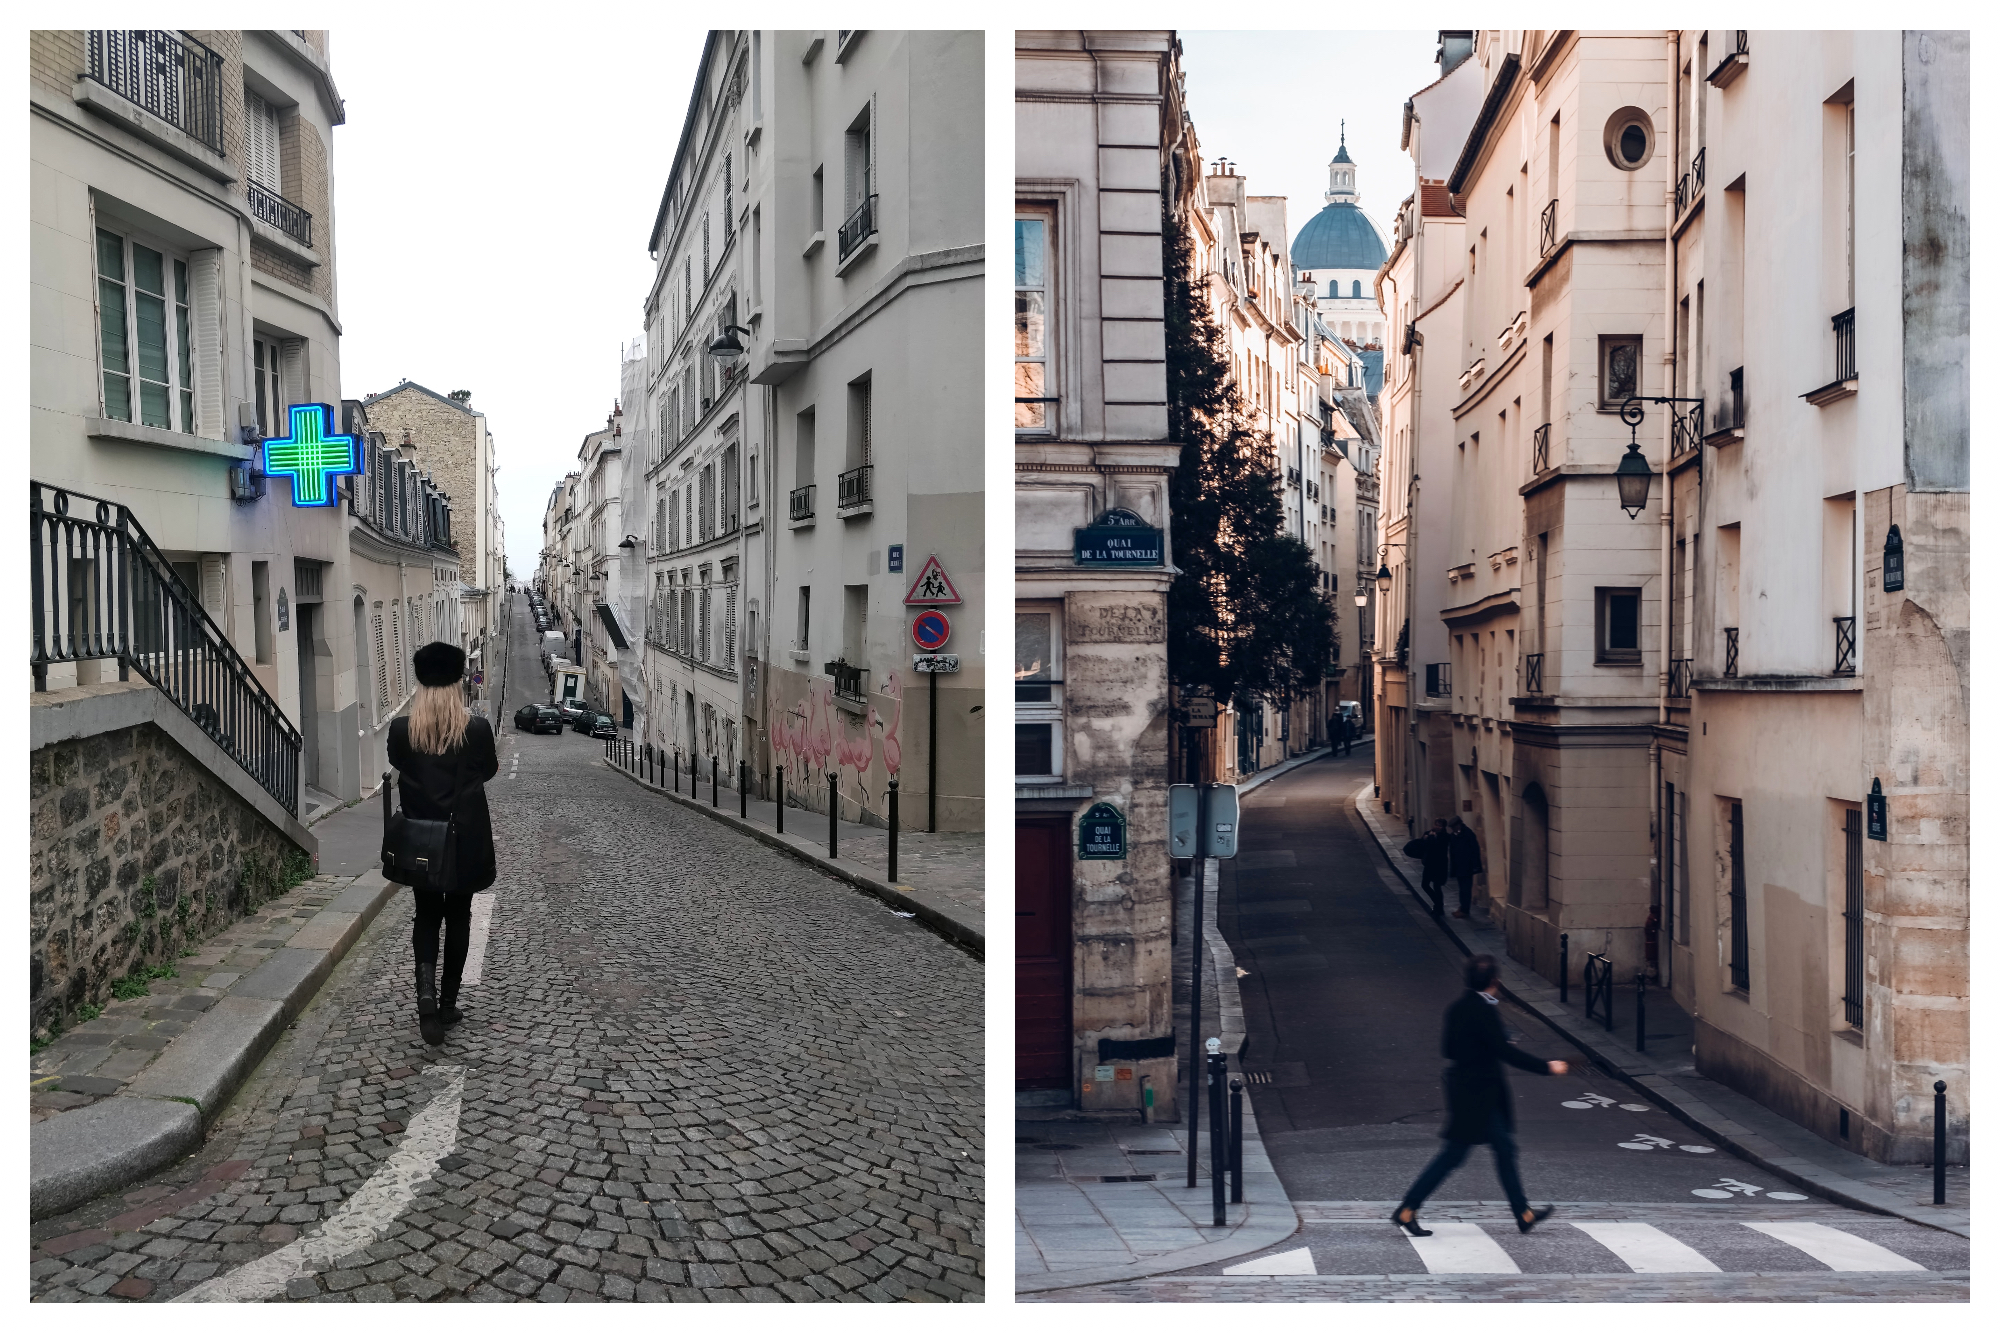 On the left: A blonde-haired woman, dressed in a classic black outfit, walks down a cobbled sweet in Paris, past a pharmacy and mural of pink flamingos. On the right: A man crosses the street in the Latin Quarter of Paris, the dome of the Pantheon visible in the background.